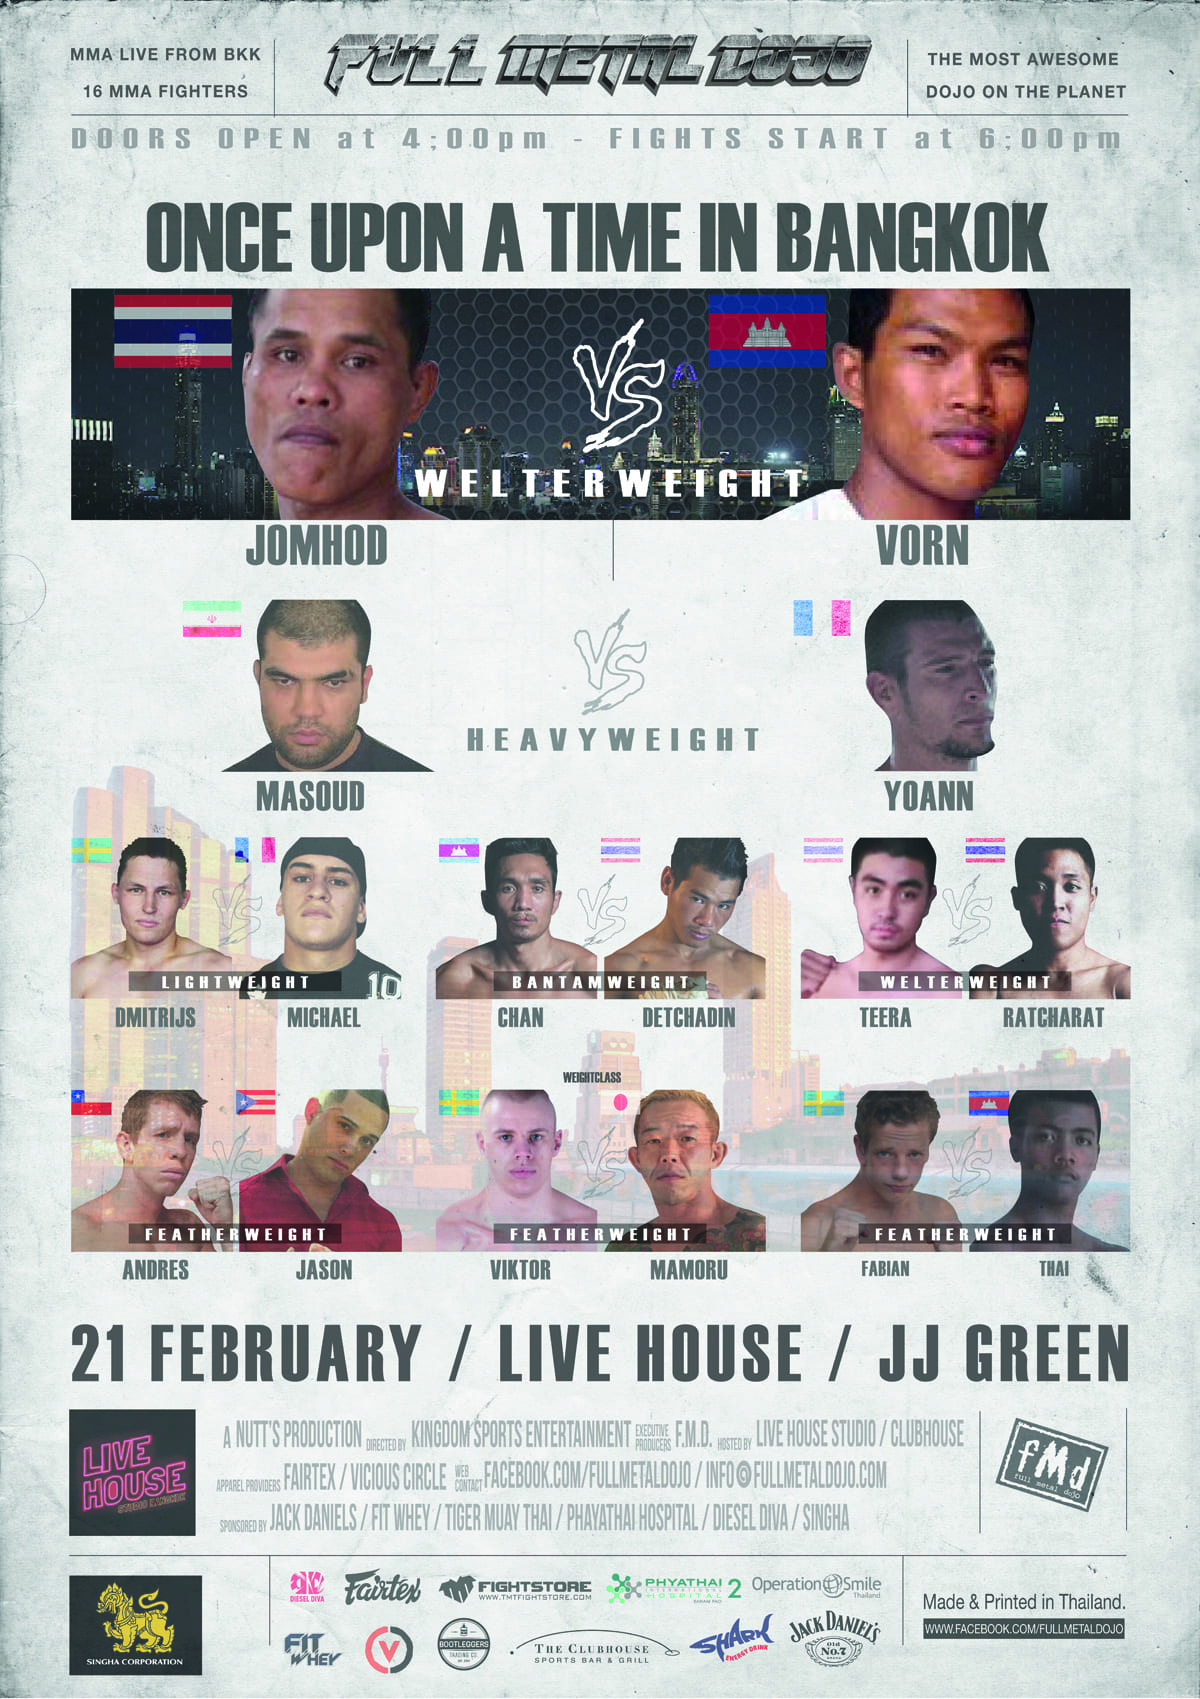 FMD4 Once Upon a Time in Bangkok Fight Card Poster